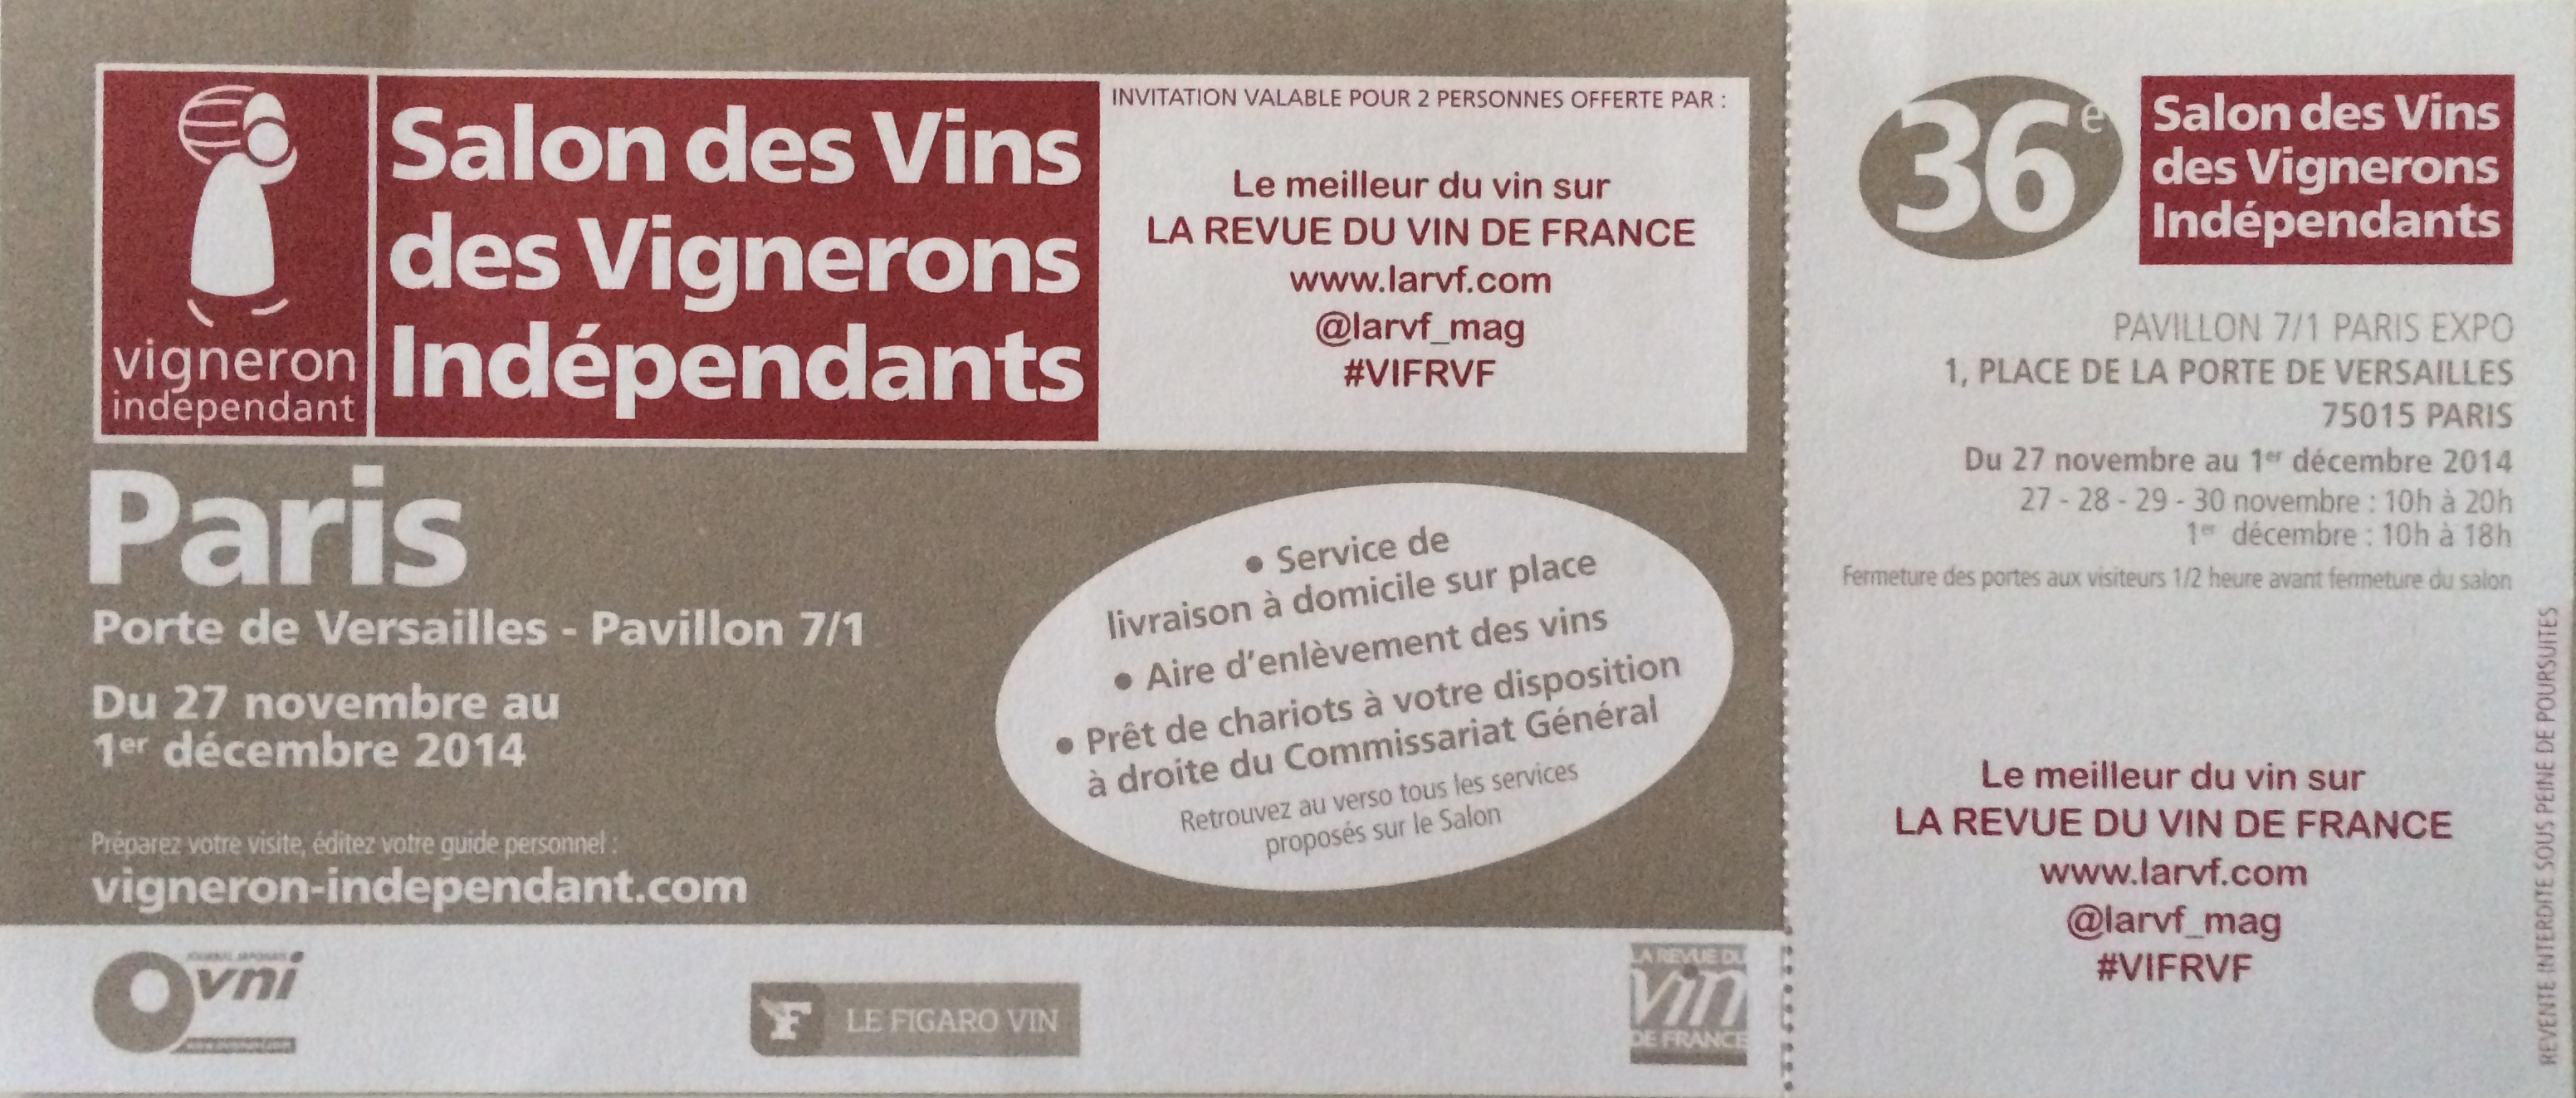 Le salon des vignerons ind pendants 2015 - Invitation salon des vignerons independants ...